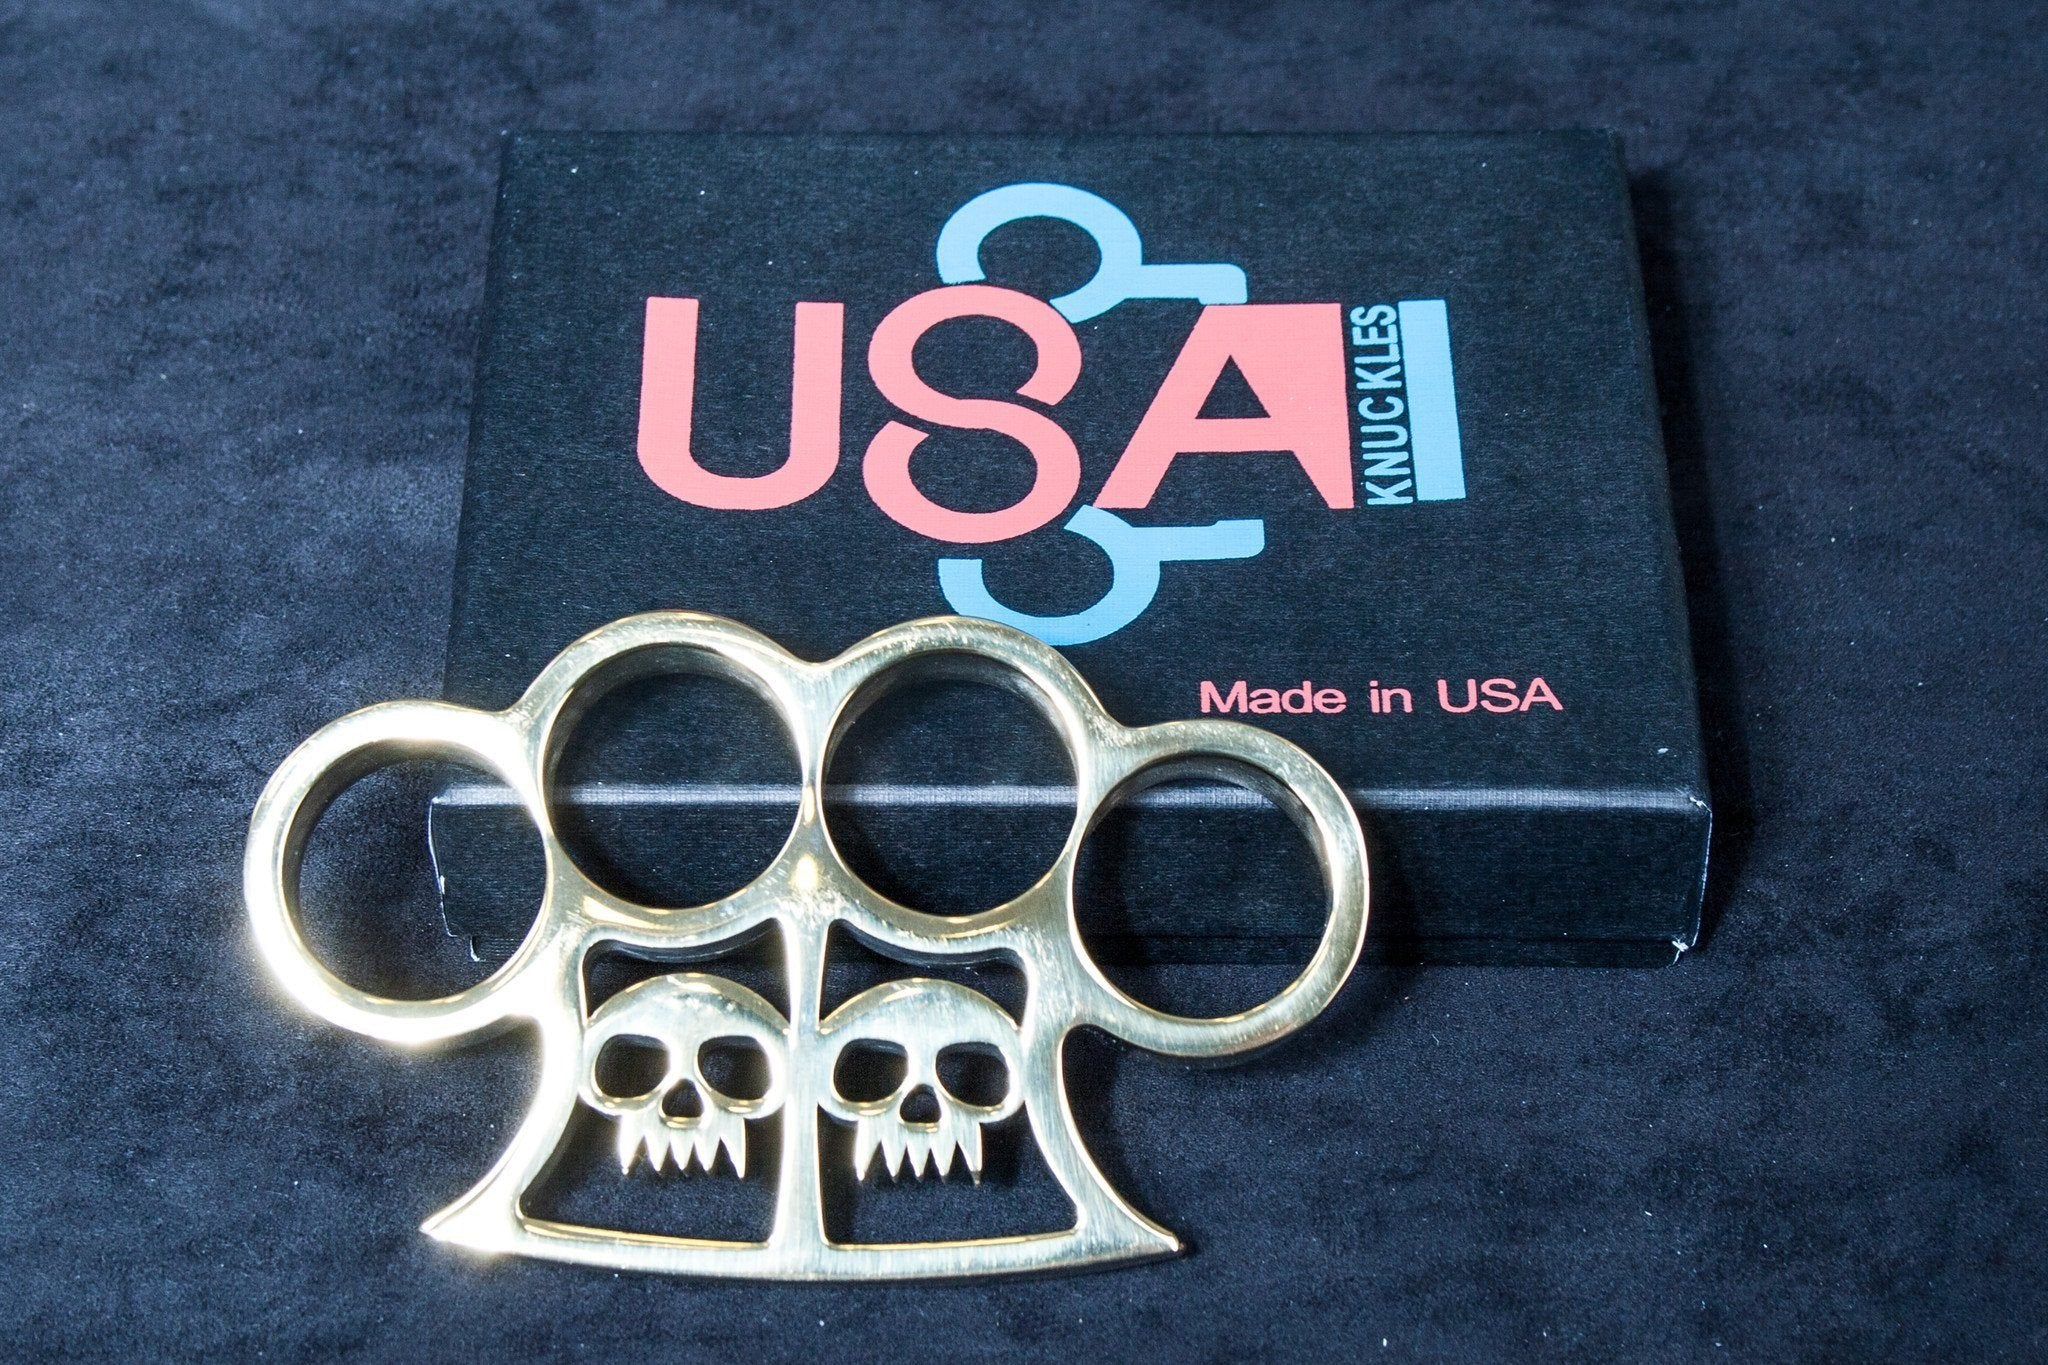 Brass Knuckles - Biggest Selection - Best Prices - Fast